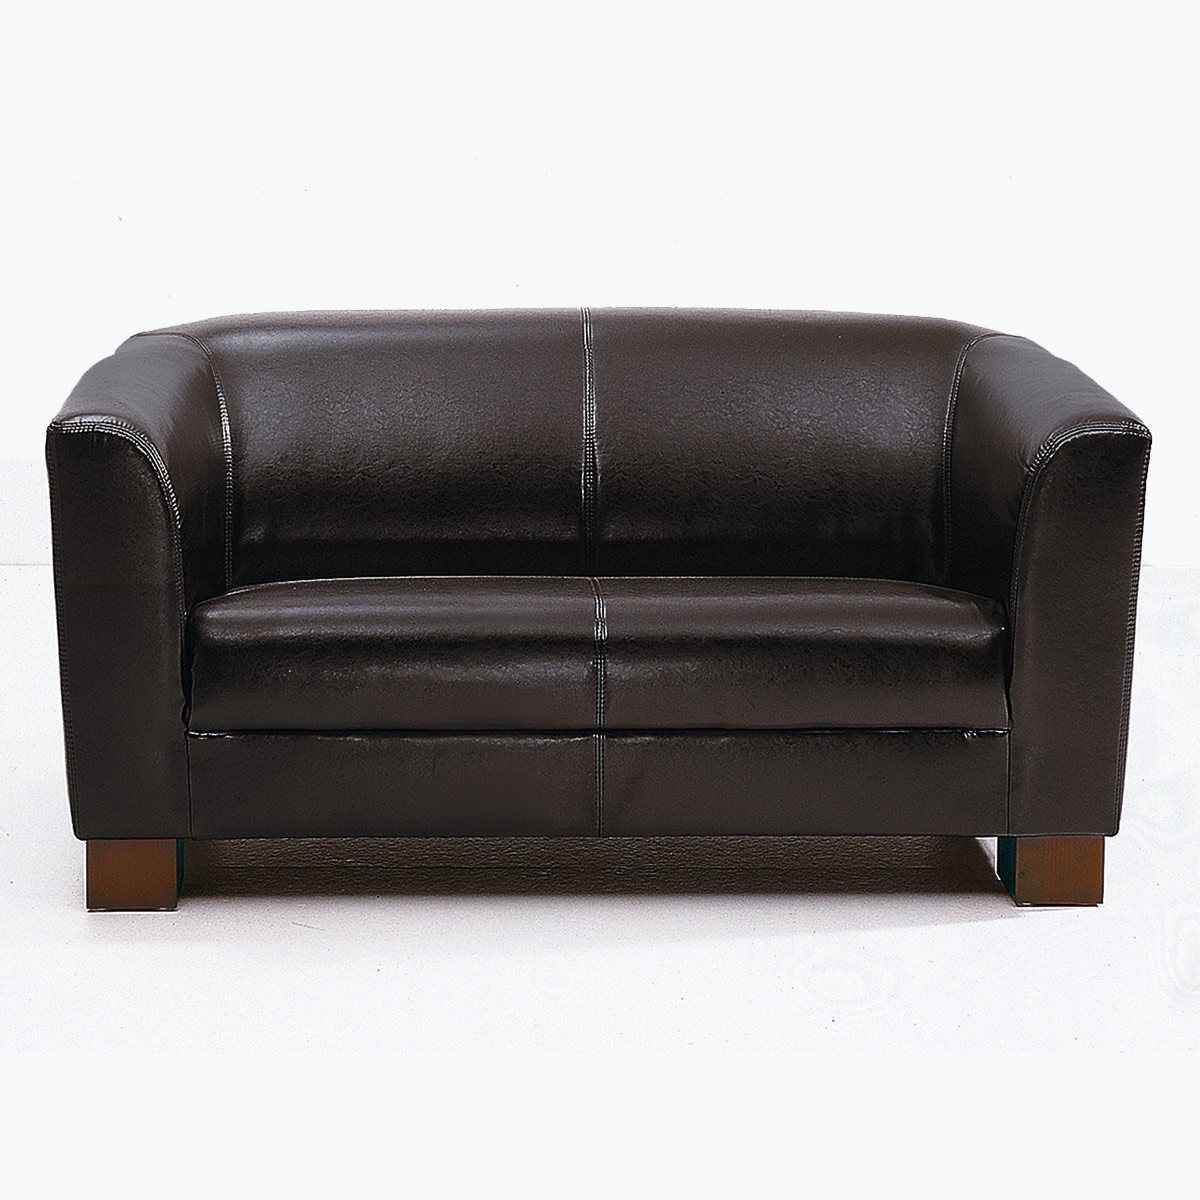 Sofa Benton 2 Sitzer In Kunstleder Antikbraun M Bel Ideal Online Shop